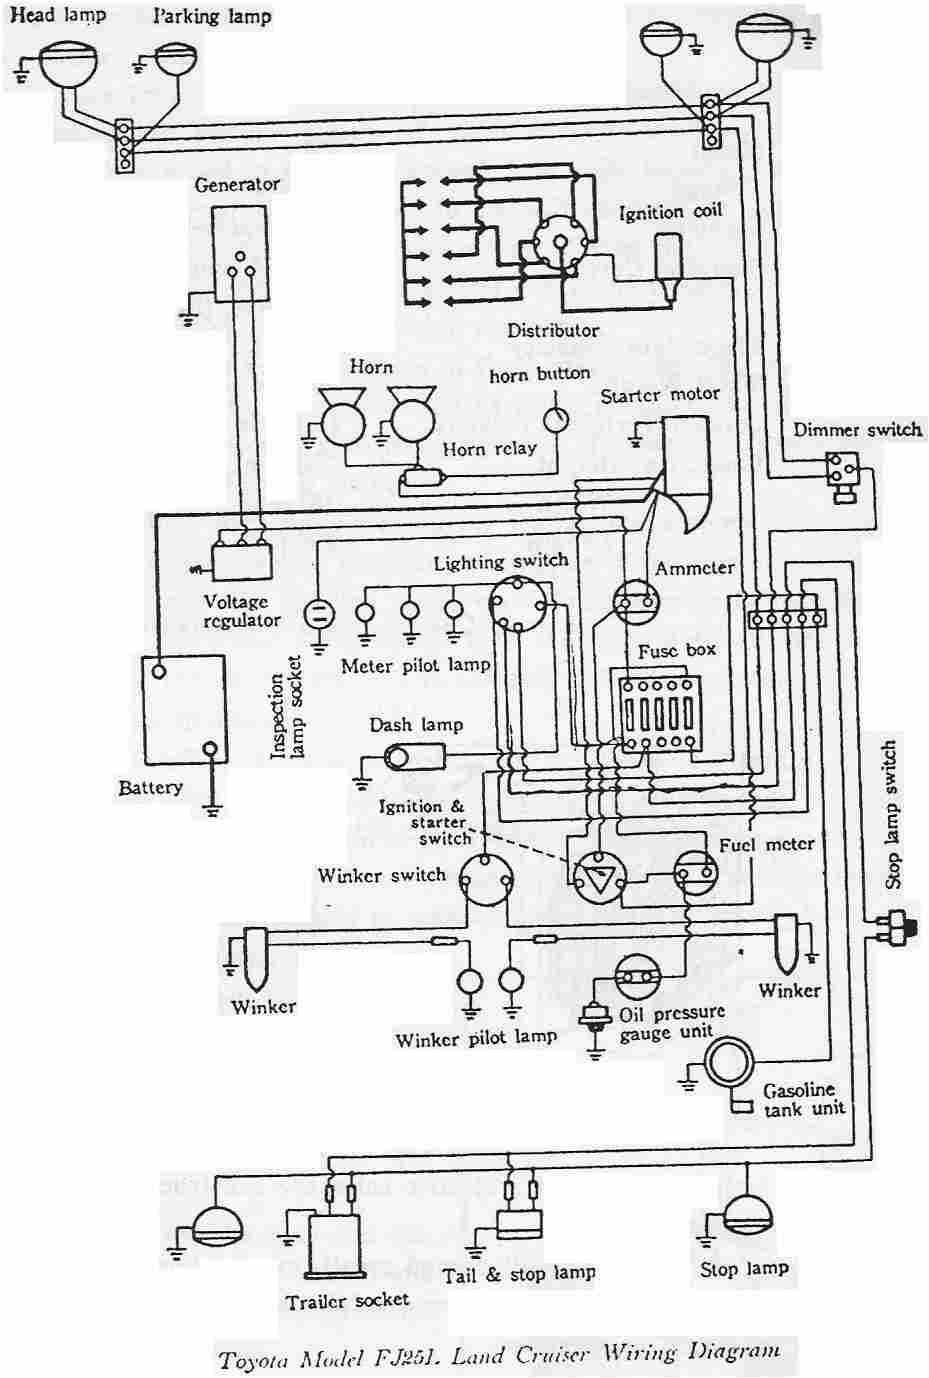 [DIAGRAM] Engine Wiring Diagrams Toyota FULL Version HD